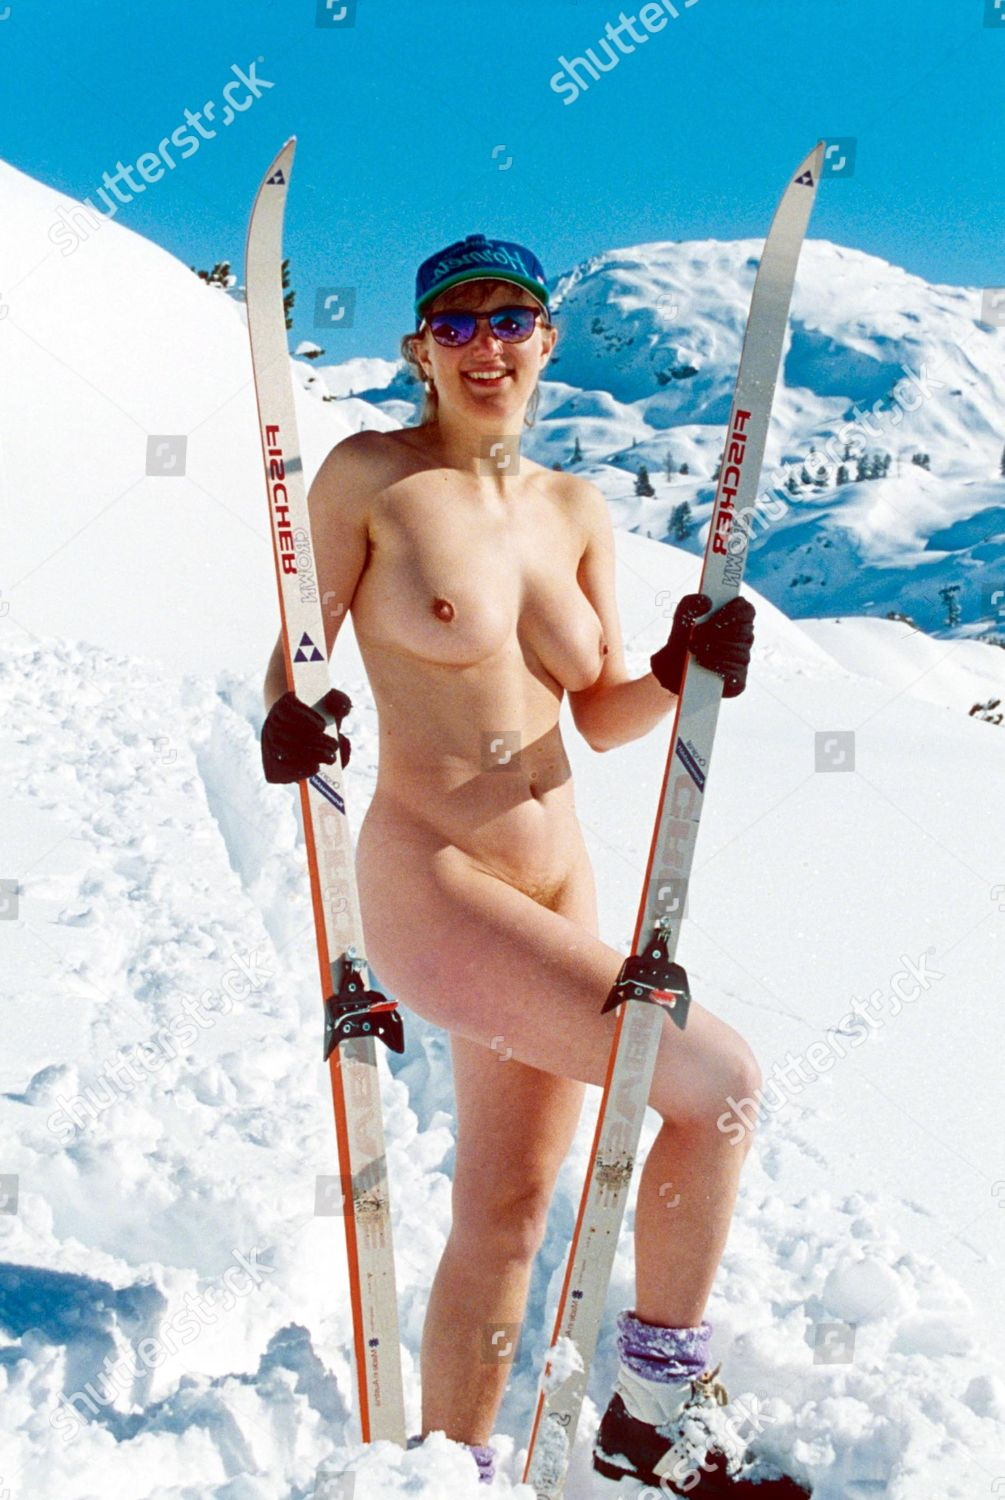 Ski naked woman images, stock photos vectors